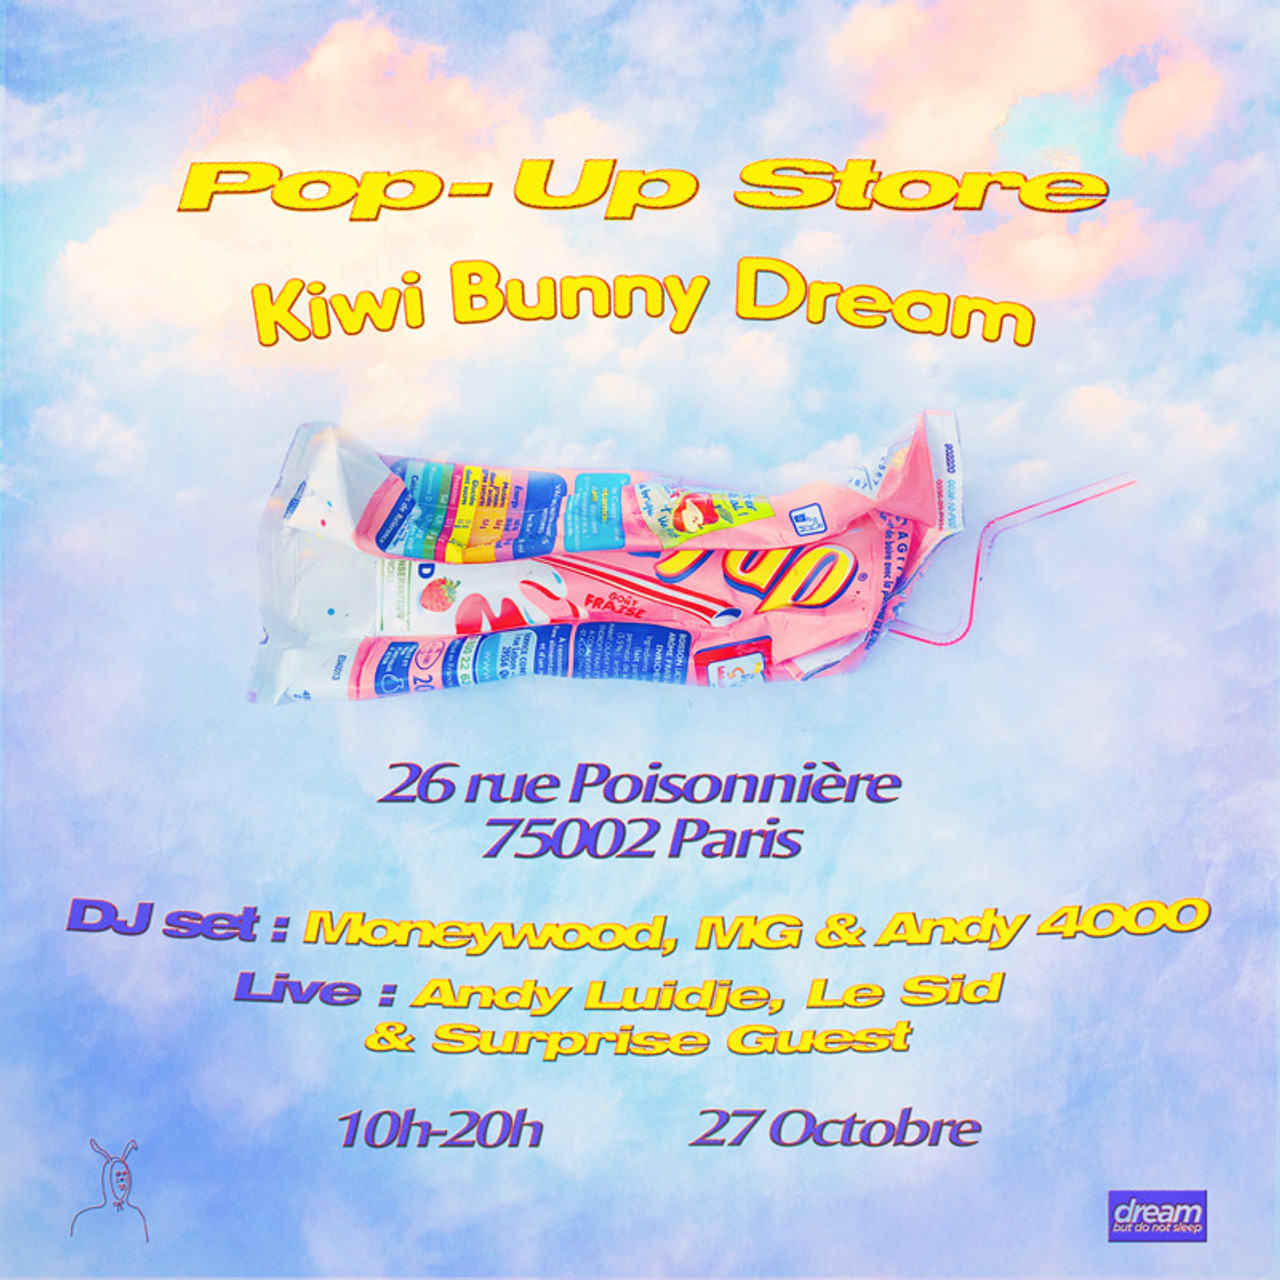 Paris: Kiwi Bunny Dream Pop-up